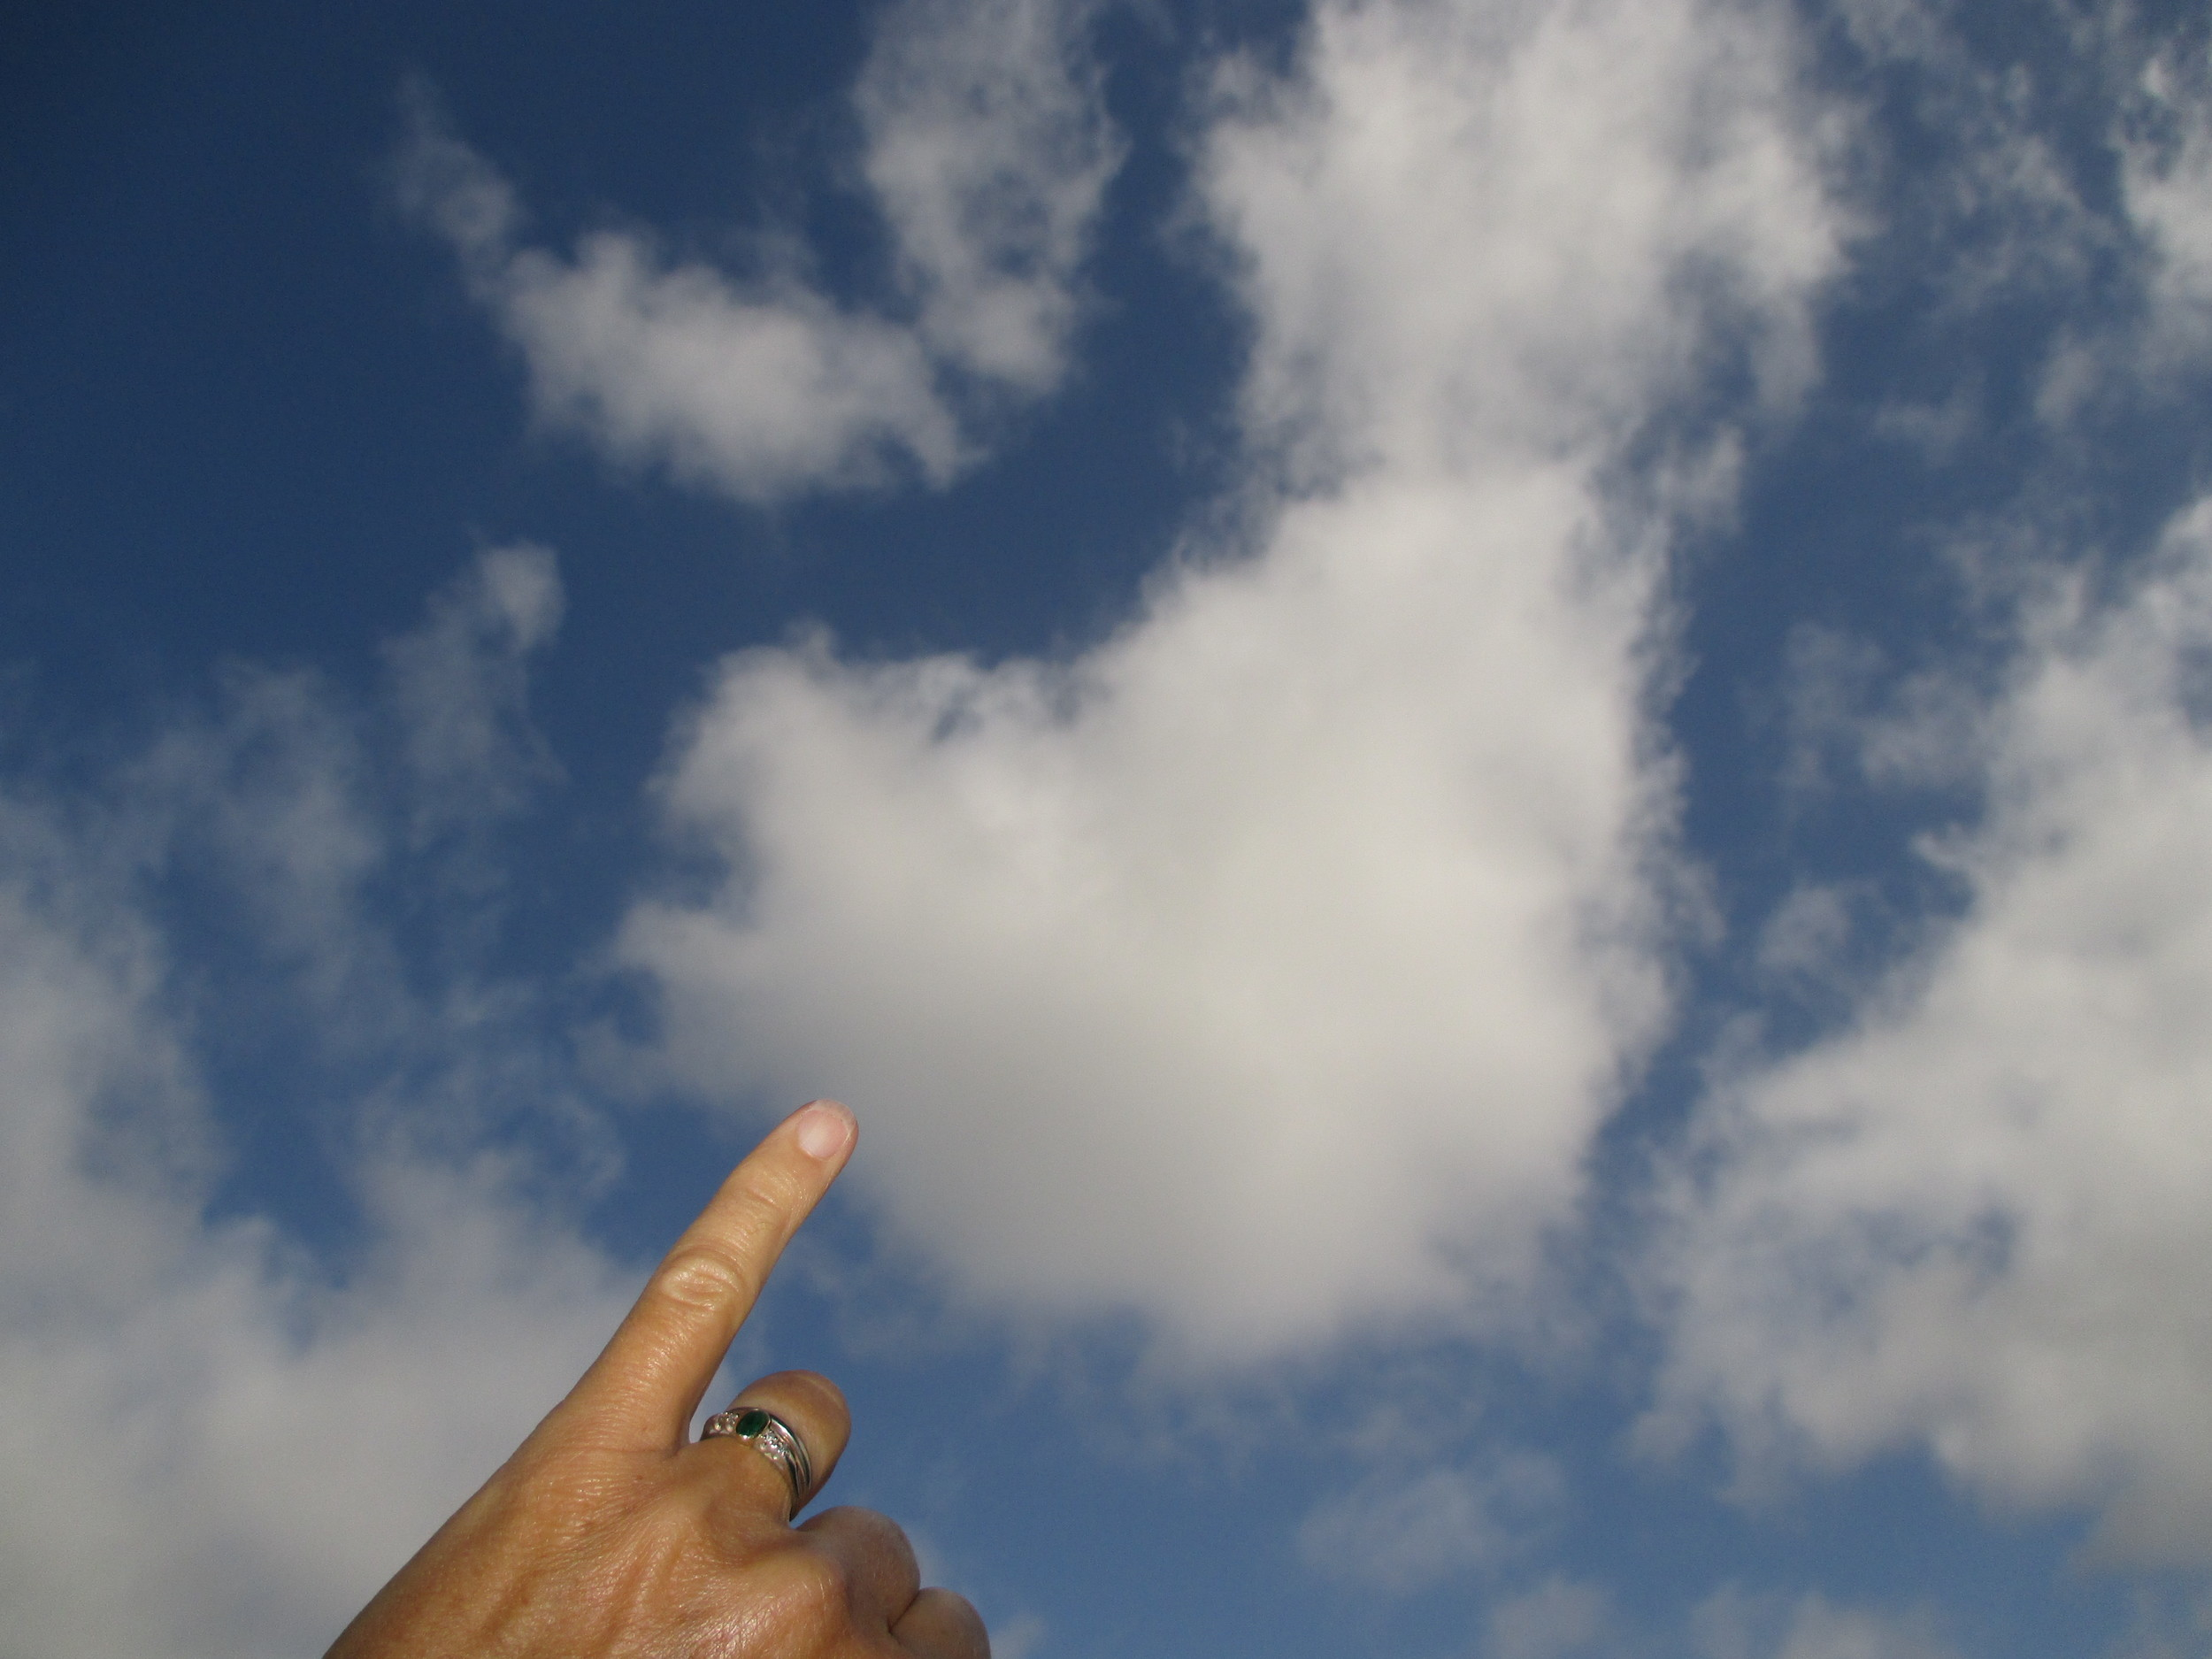 It's not cirrocumulus, higher clouds with cloudlettes the size of your pinky nail (or rice grains some say).